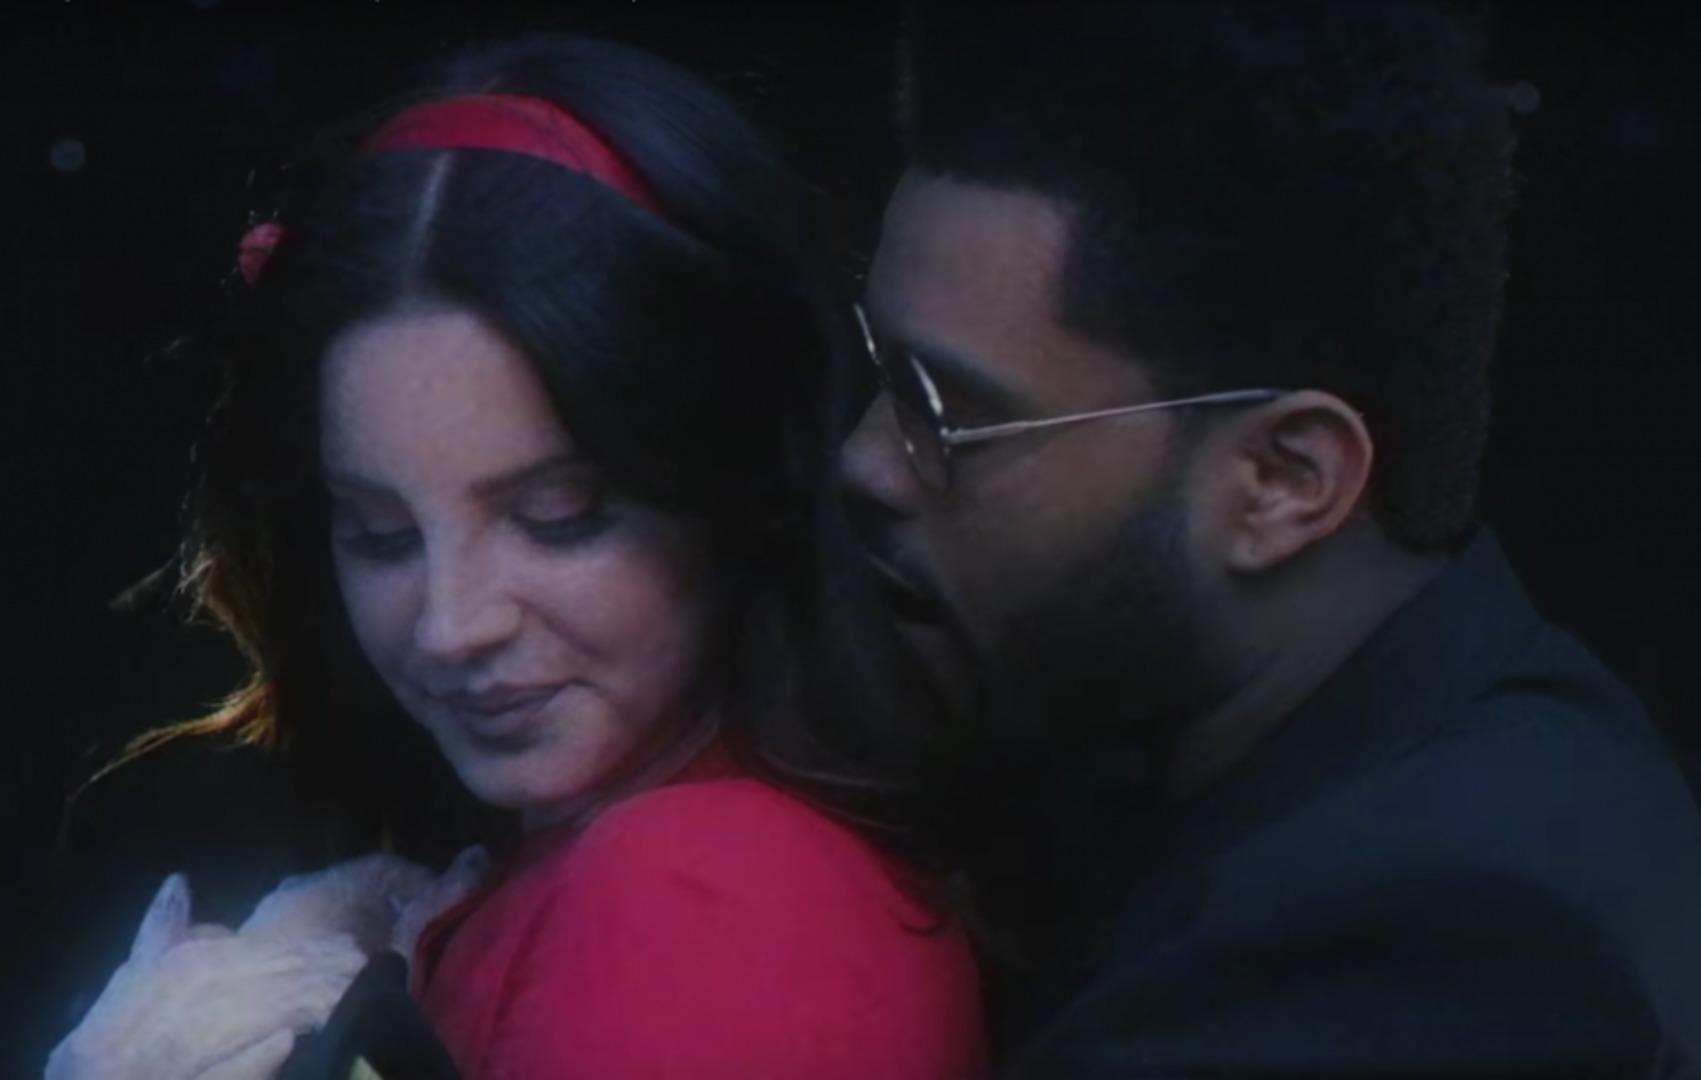 The Weeknd Getting TOO CLOSE To Lana Del Ray In Newest Music Video!?